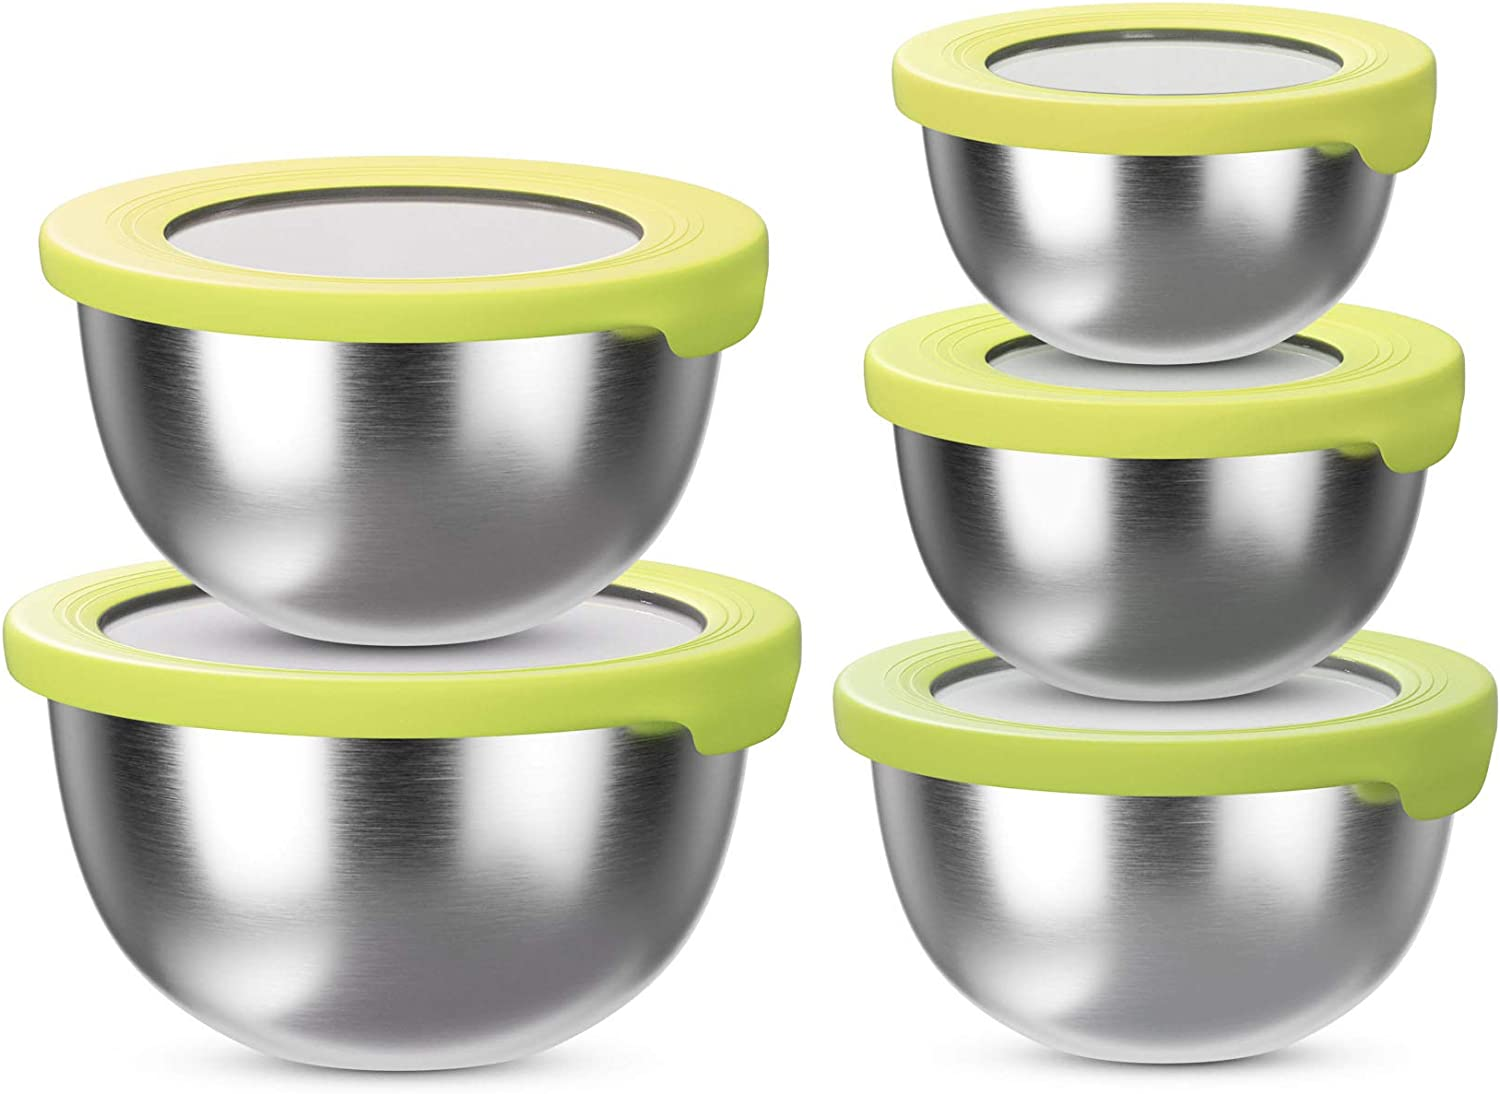 BLNKD Stainless Steel Mixing Bowl with Lids (Set of 5) – Kitchen Nesting Bowl for Serving, Salad, Marinating, Dough, Cooking, Baking & Food Storage –Colorful Lids– Stackable & Space Saving, Yellow…